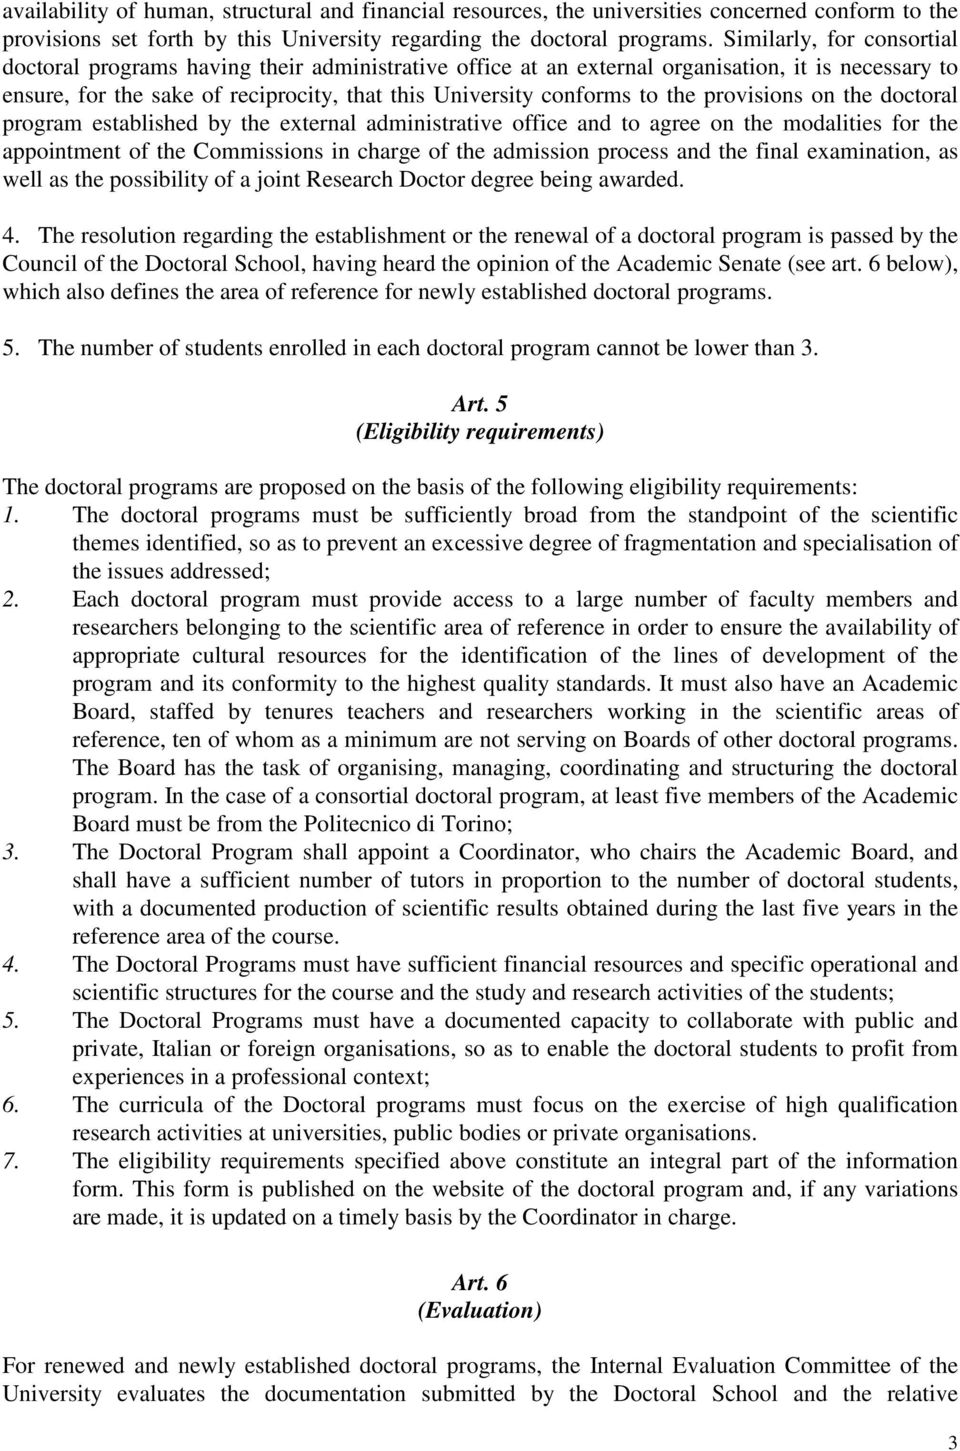 the provisions on the doctoral program established by the external administrative office and to agree on the modalities for the appointment of the Commissions in charge of the admission process and